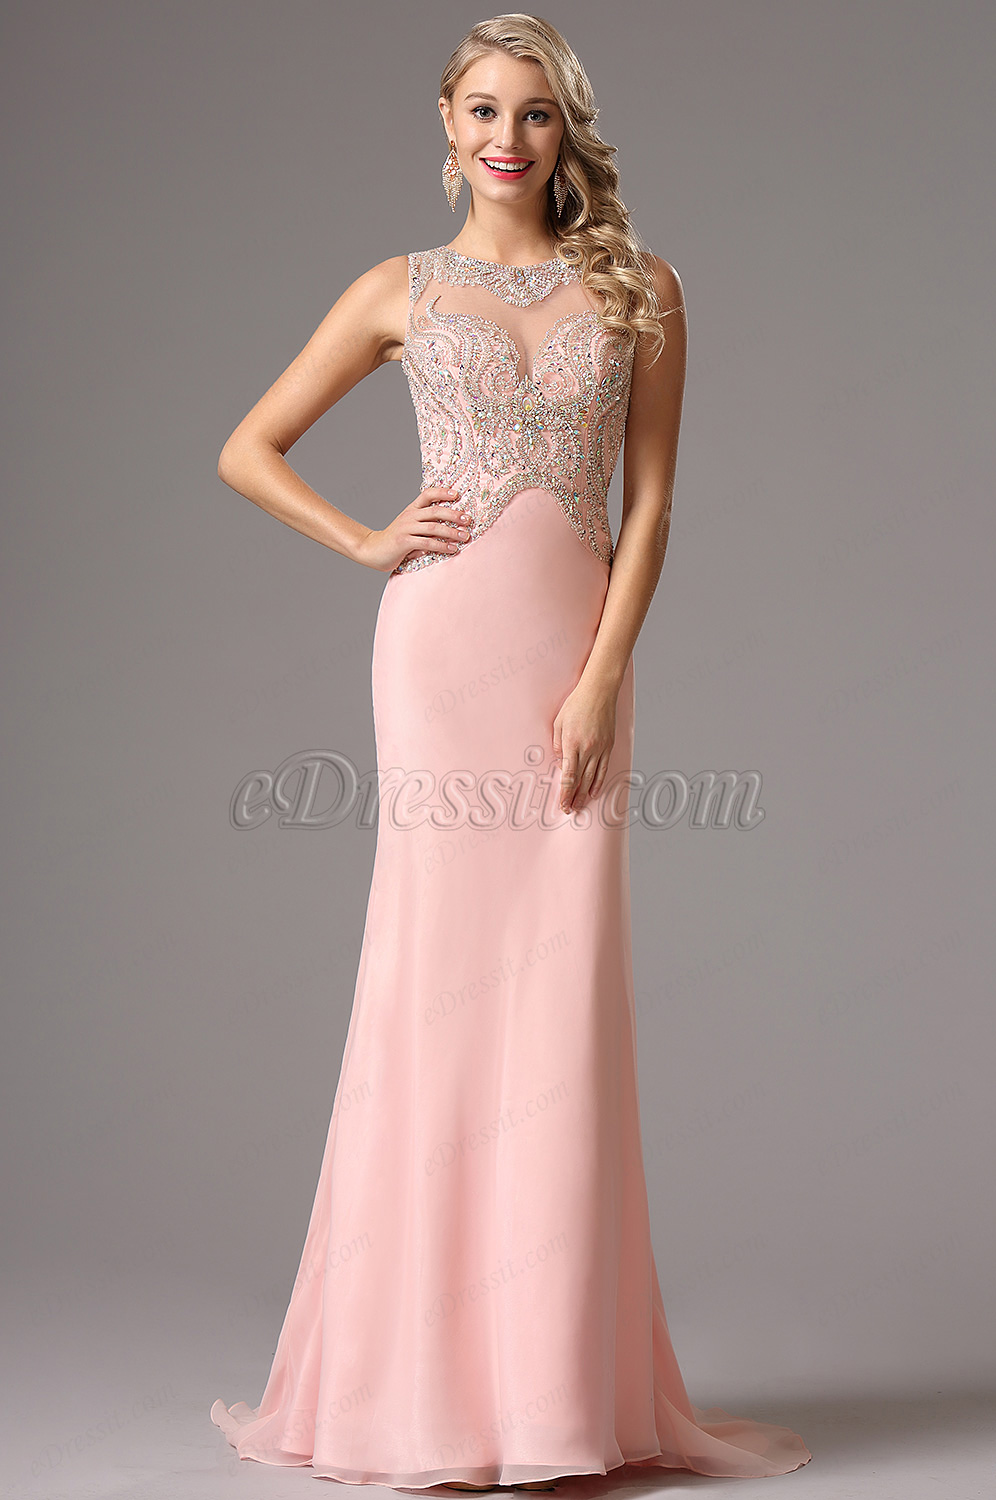 Unique Design & Affordable Long Evening Prom Dresses - eDressit